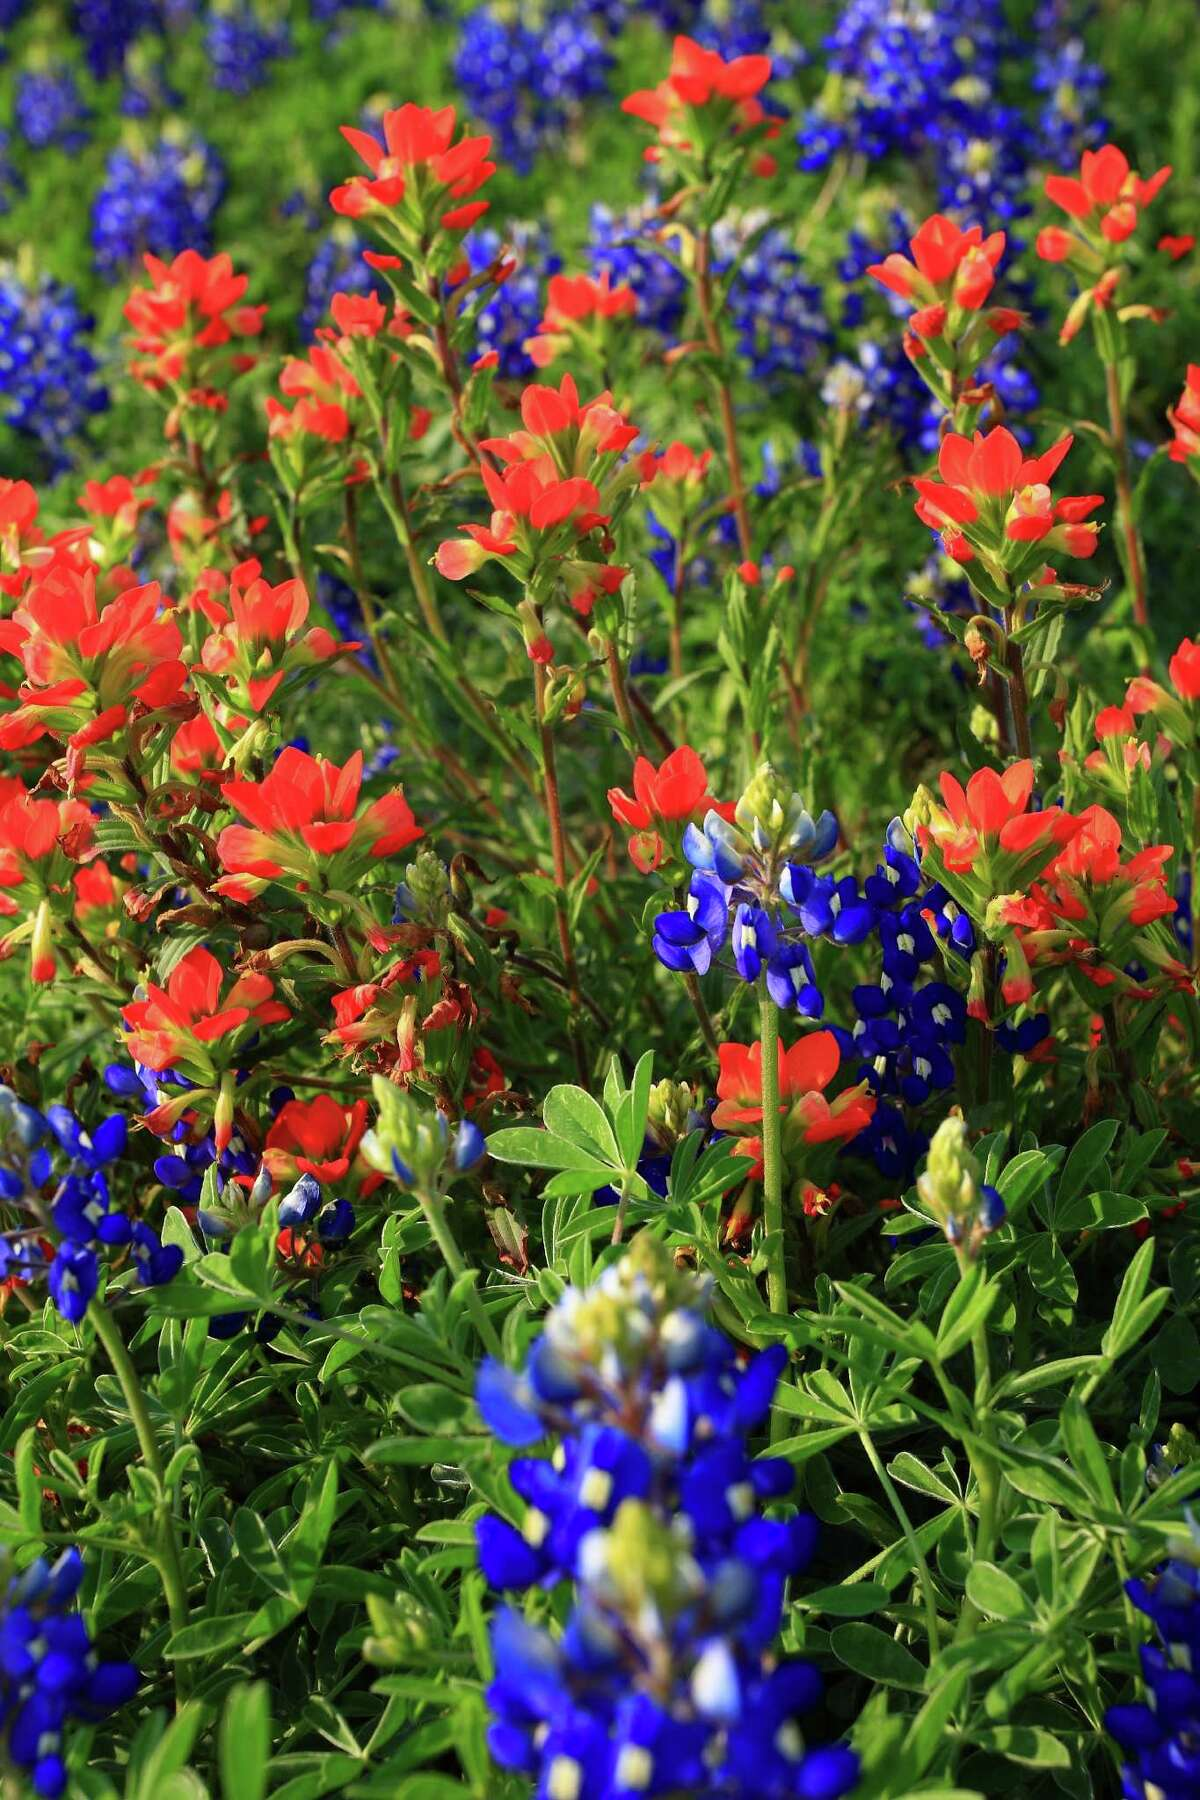 2.There are six different species of bluebonnets And, they're all a little hard to pronounce if you're not wild about wildflowers: Lupinus subcarnosus, Lupinus texensis, Lupinus havardii, Lupinus concinnus, Lupinus plattensis and Lupinus perennis.